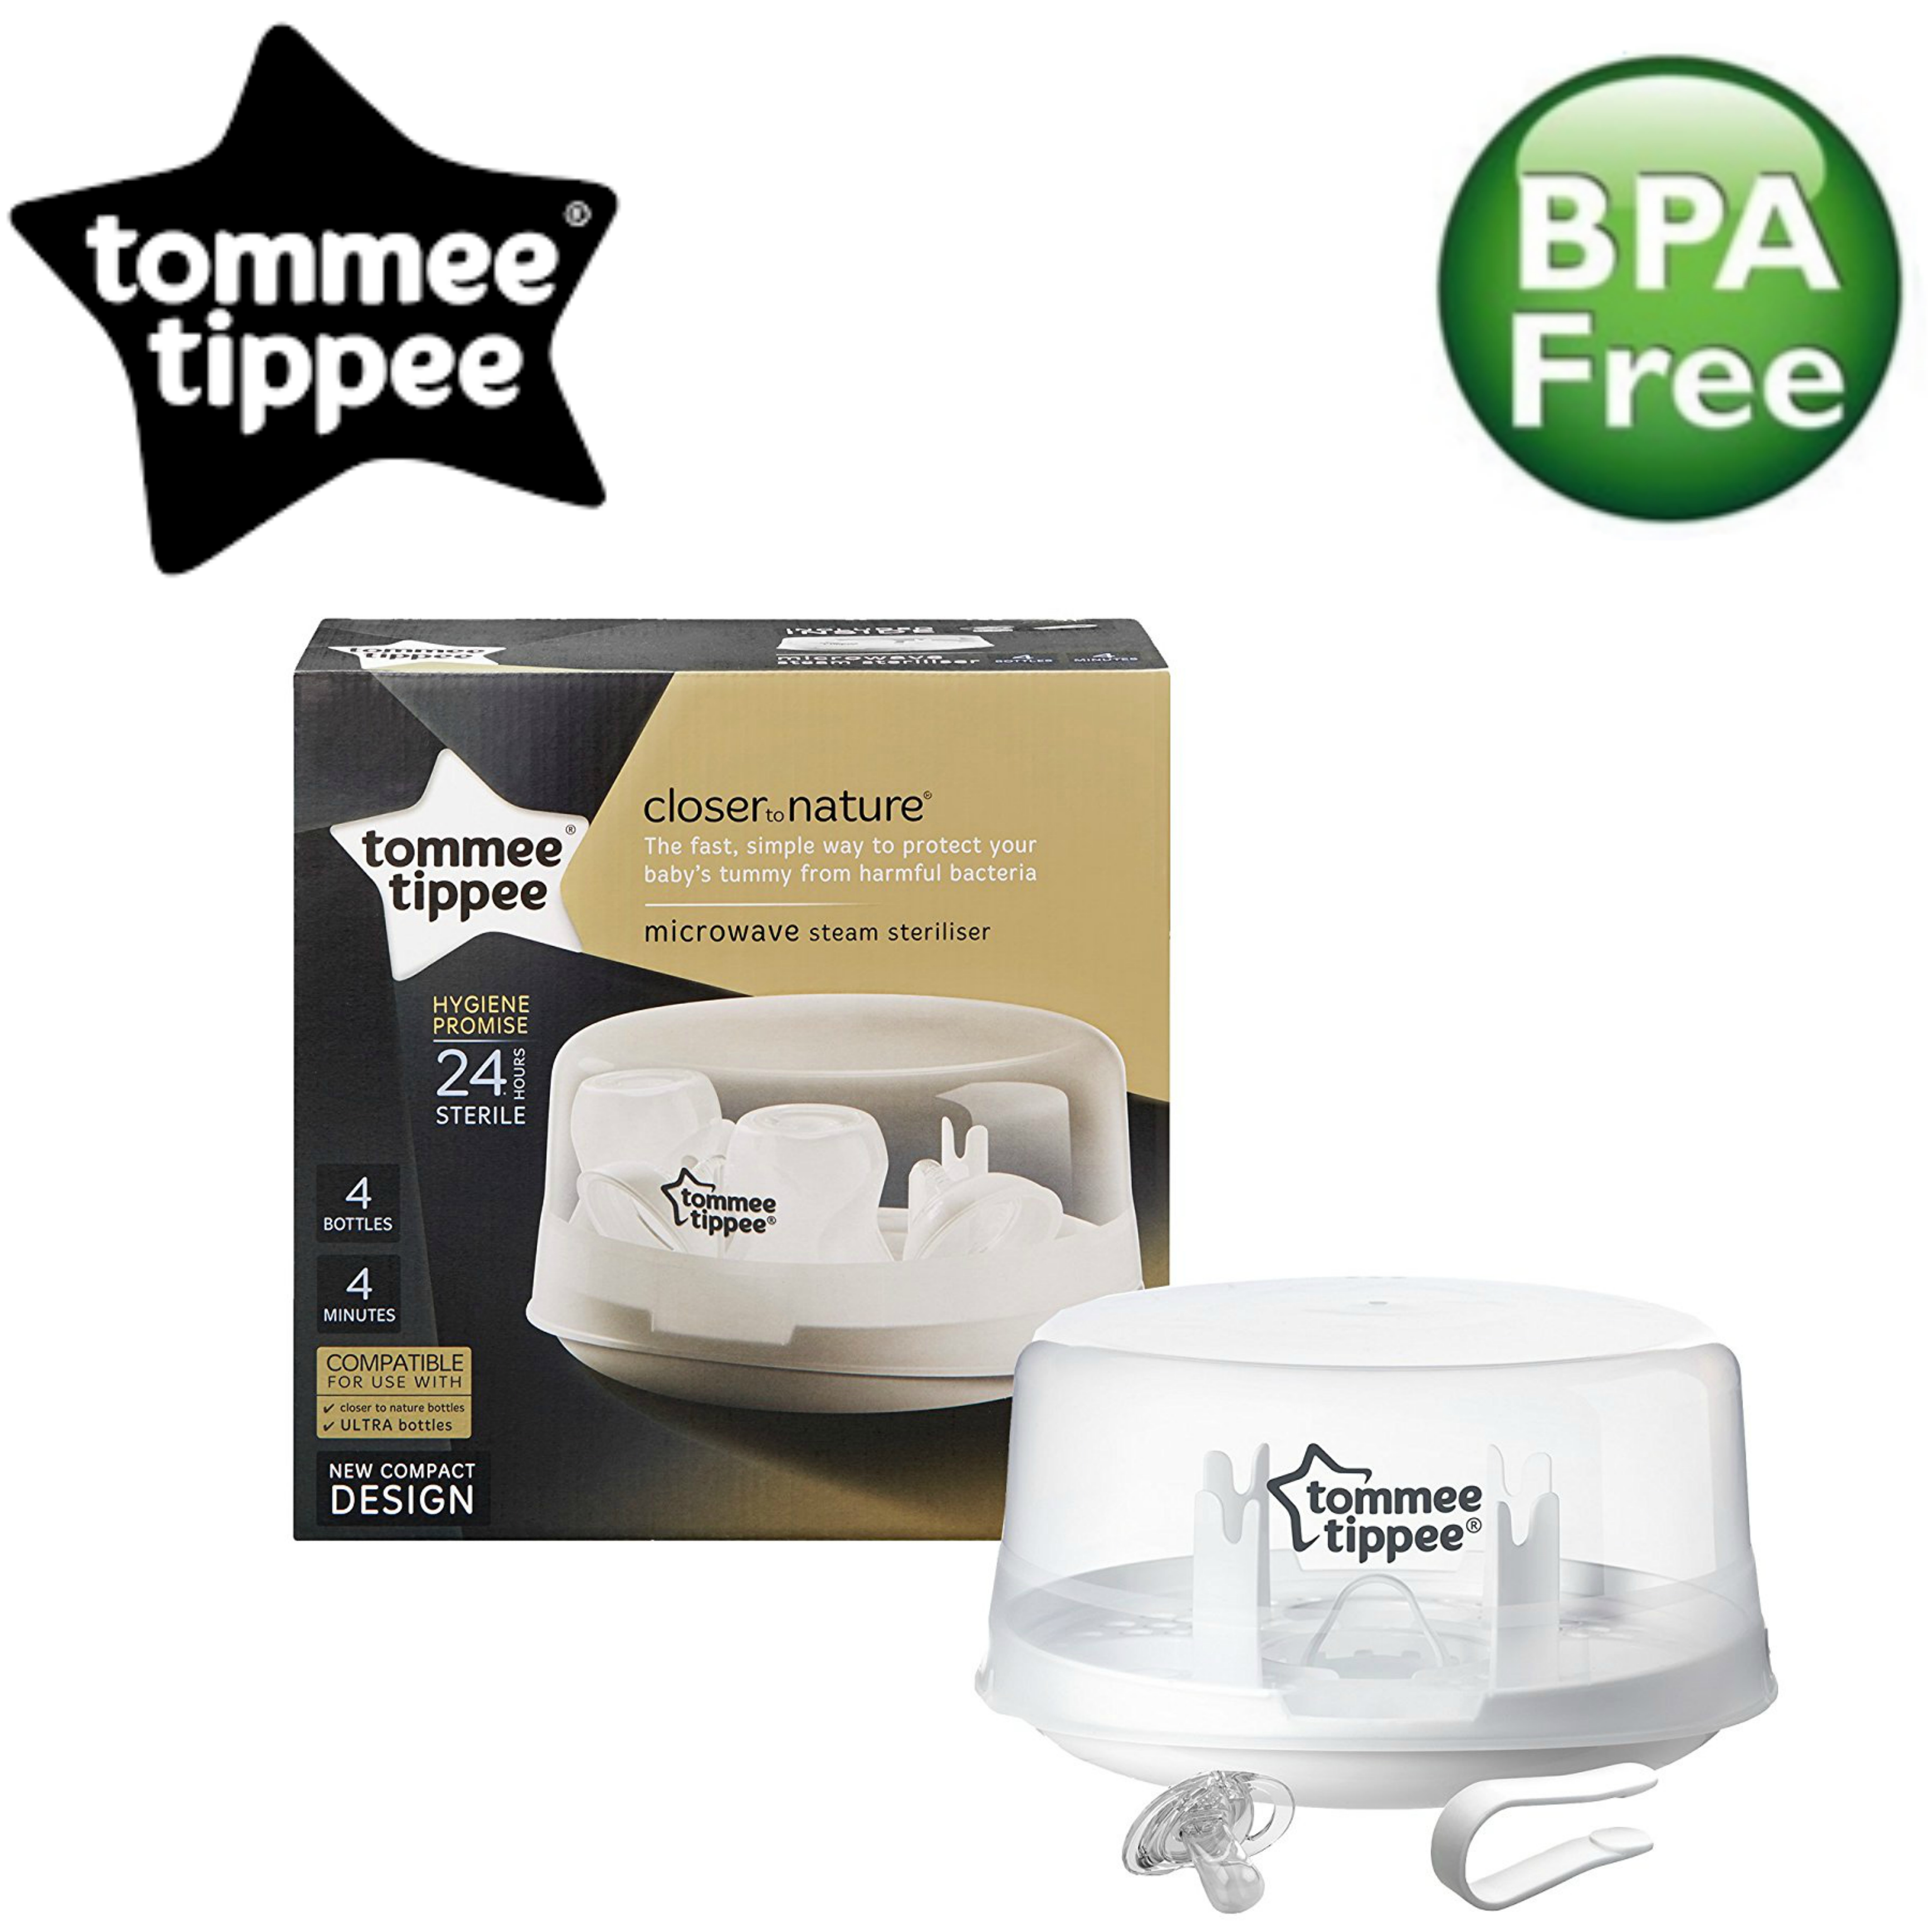 Tommee Tippee Microwave Steam Steriliser | Holds 4 Baby Feeding Bottles | compact | New